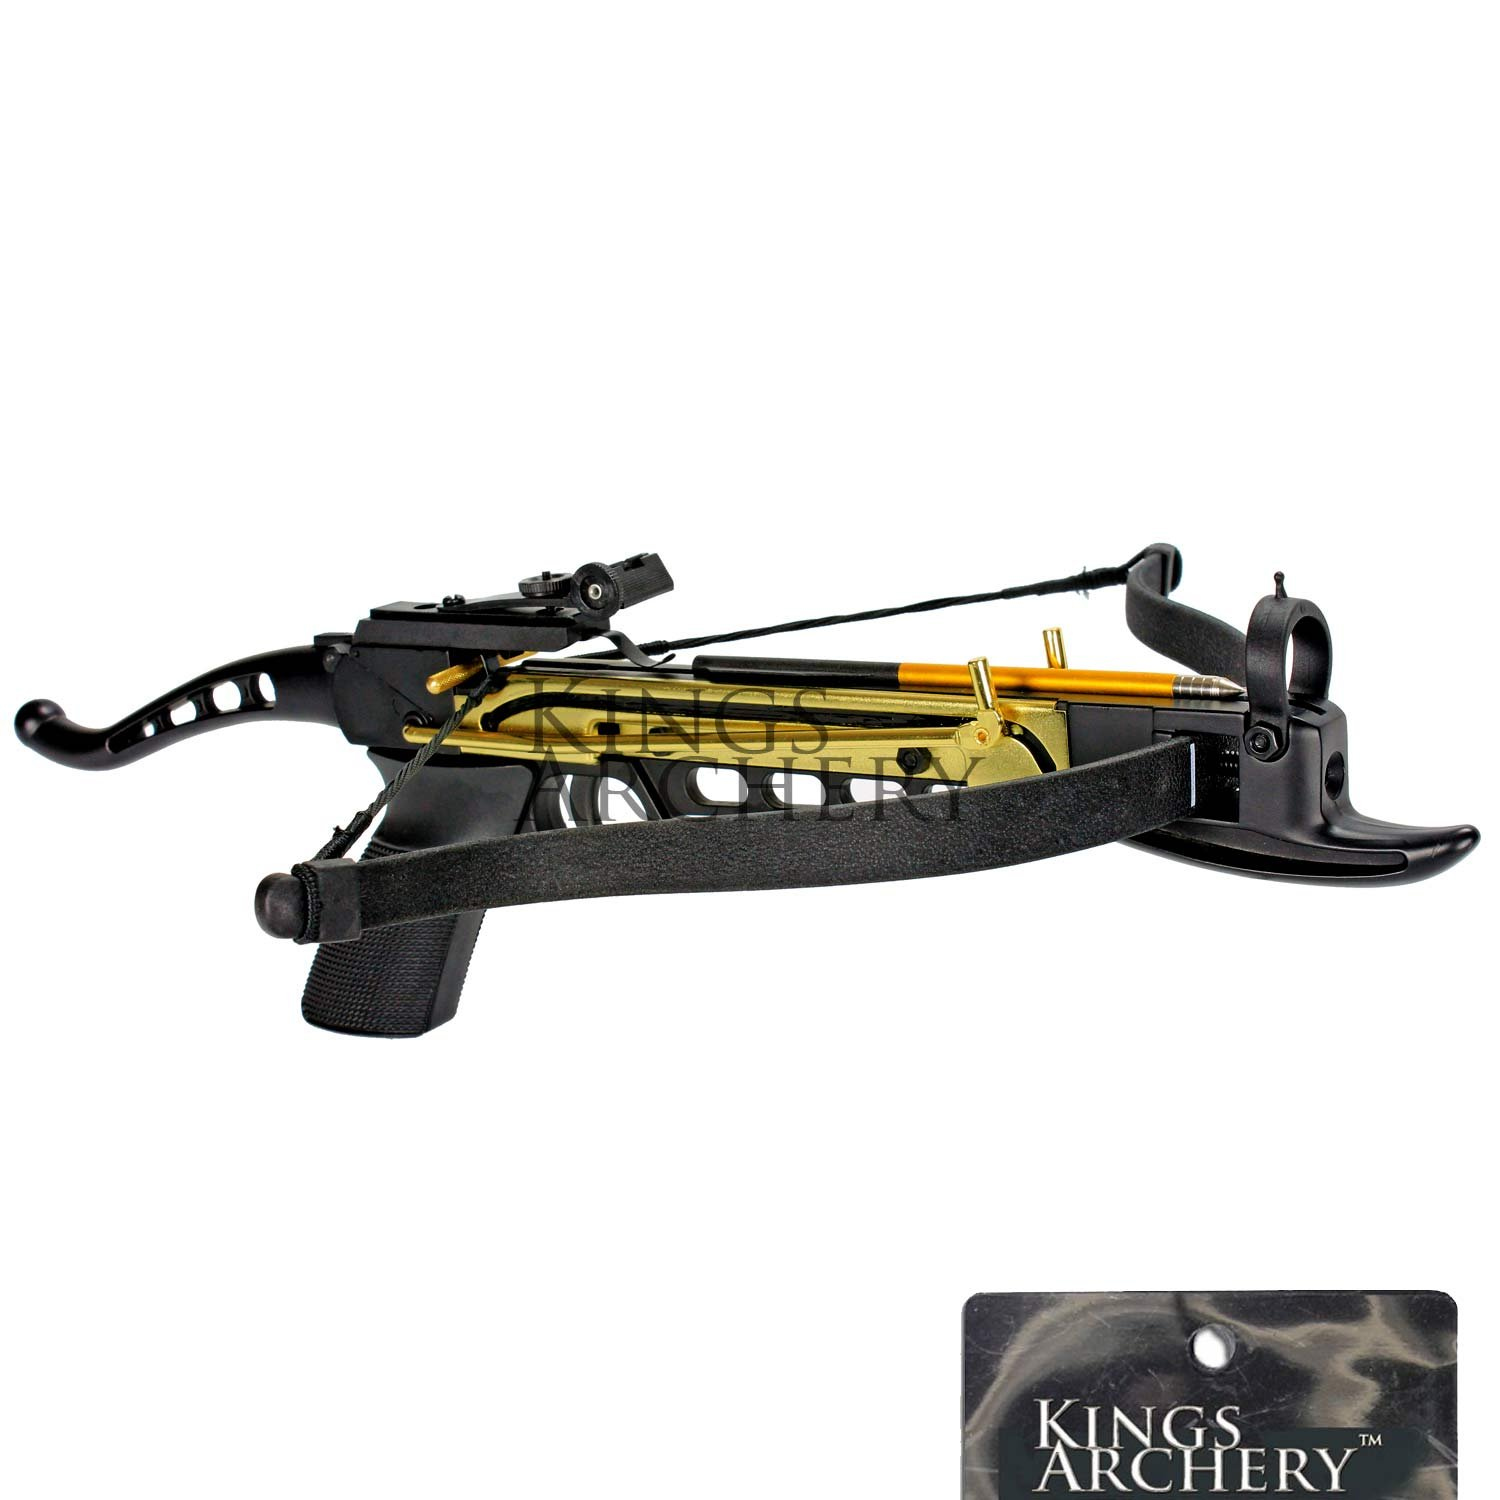 Crossbow Self-Cocking 80 LBS by KingsArchery® with Hunting Scope, 3 Aluminium Arrow Bolts, and Bonus 120-pack of Colored PVC Arrow Bolts + KingsArchery® Warranty by KingsArchery (Image #6)